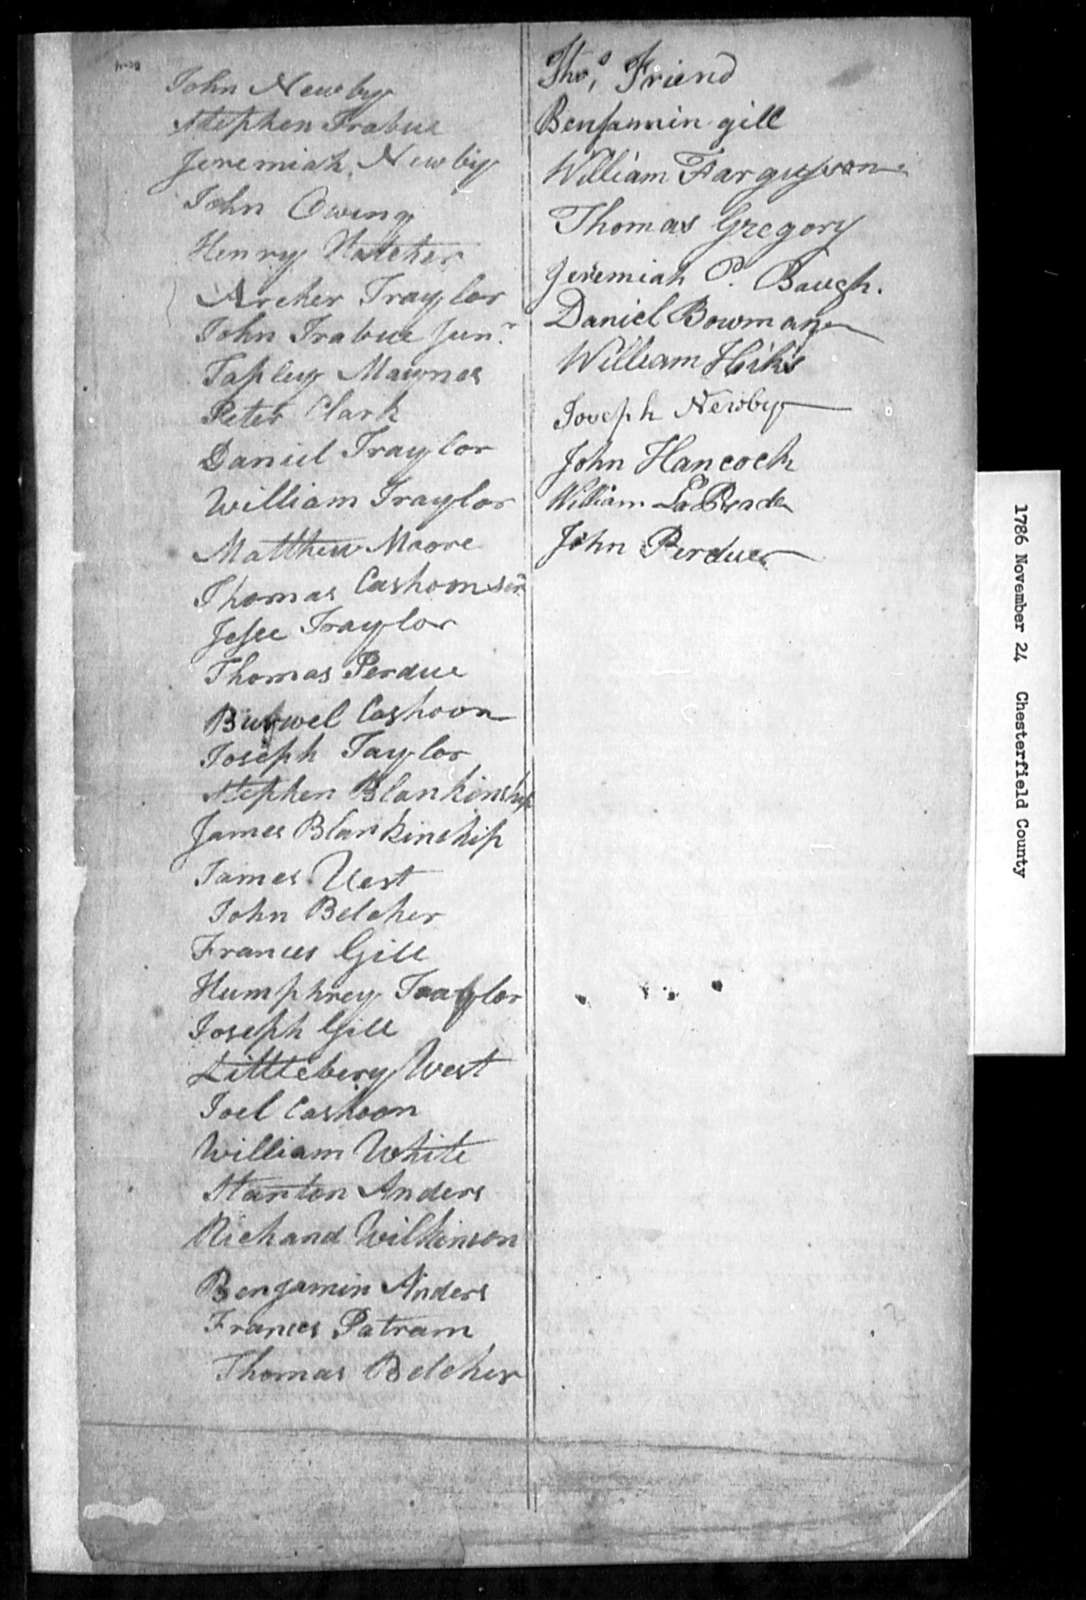 November 24, 1786, Chesterfield, Opposed to incorporation act.